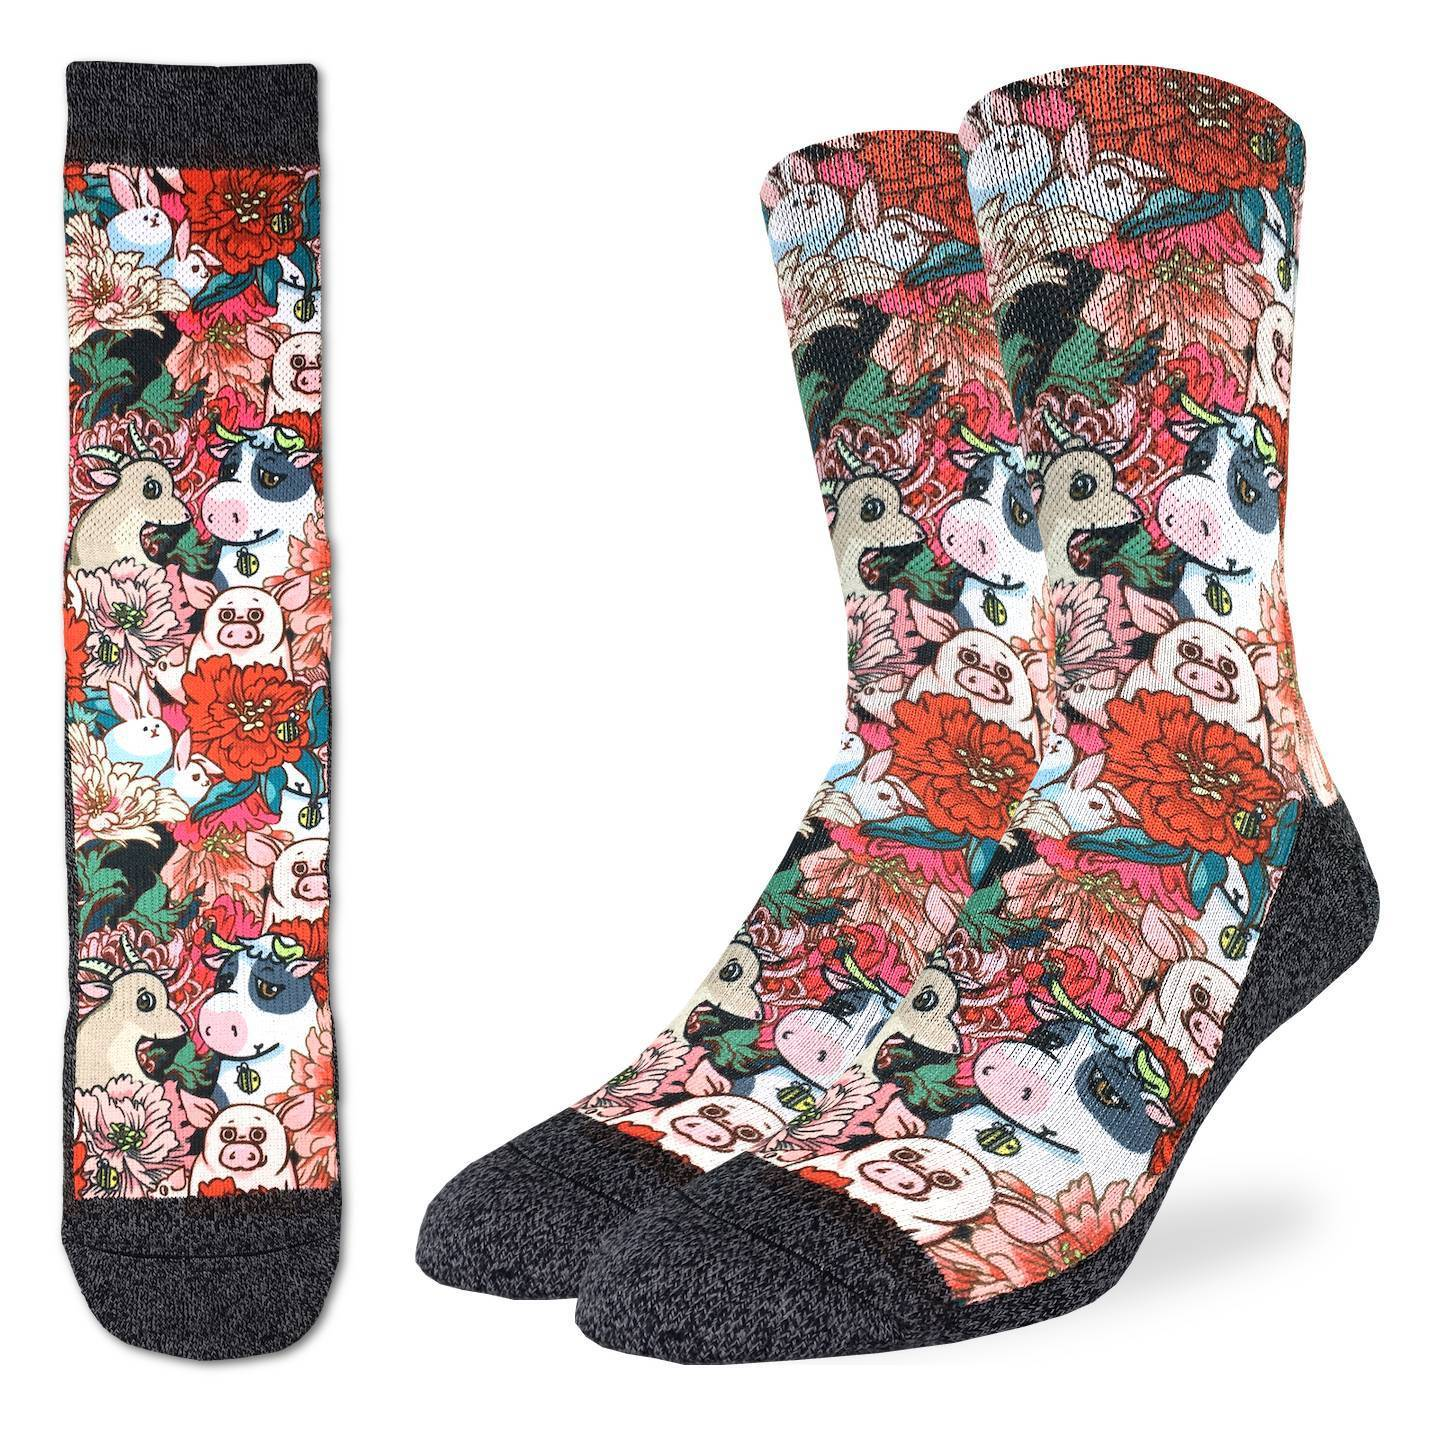 Men's Floral Farm Socks - Good Luck Sock